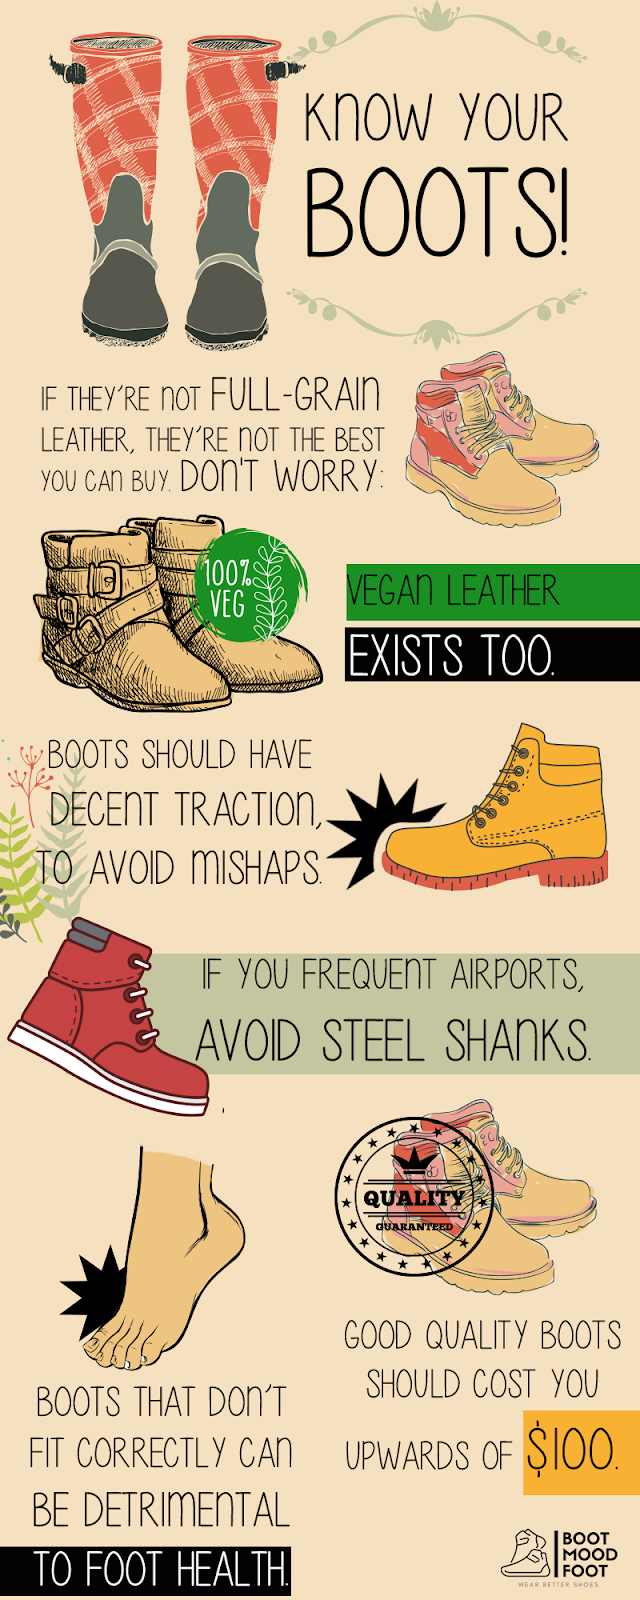 Know Your Boots